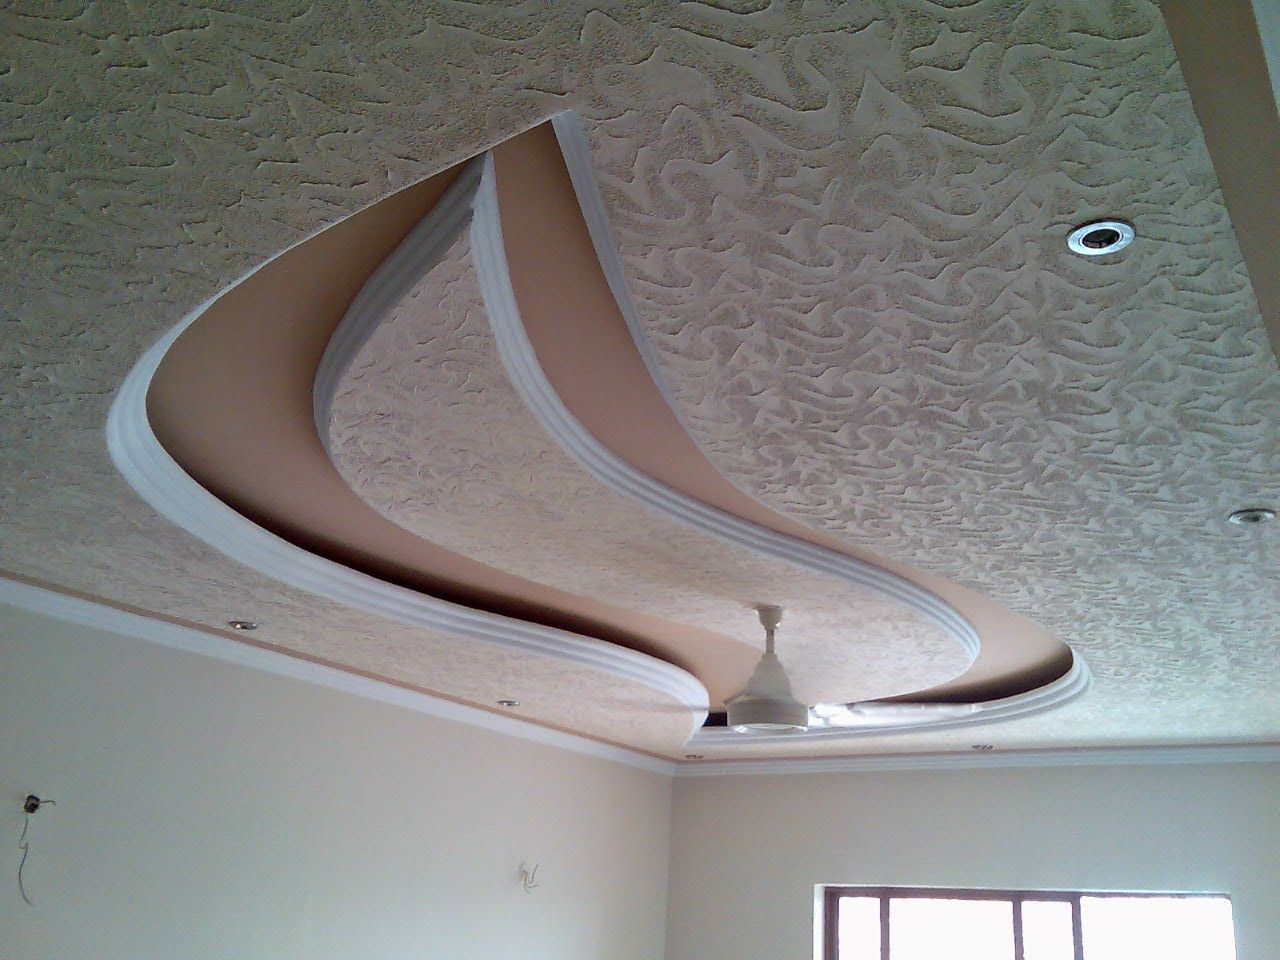 False ceiling design for living room pop square gypsum ceiling designs - Gypsum Board False Ceiling Designs Are Environmentally Friendly Have Good Sound Insulation And Fire Resistance